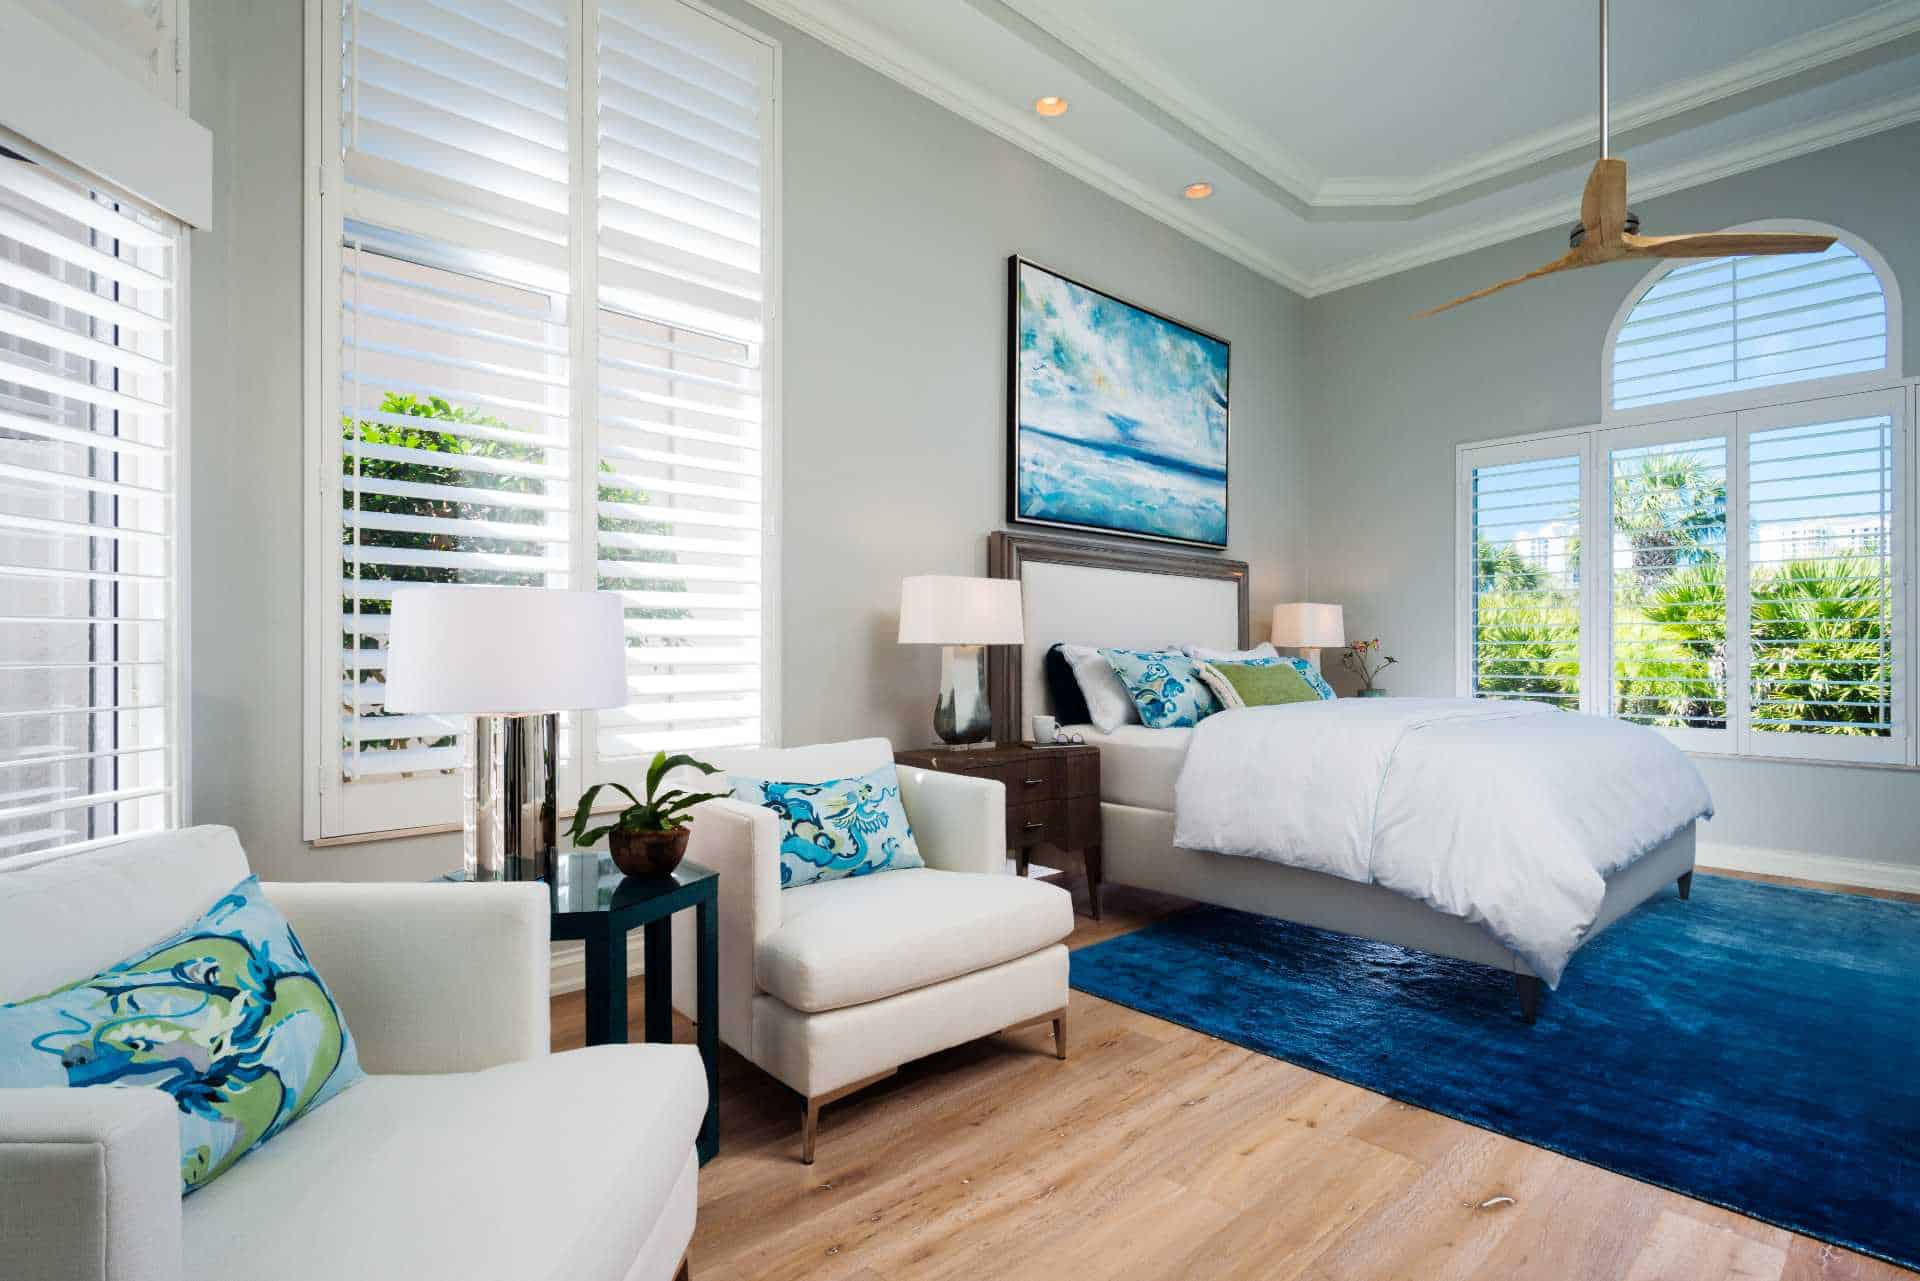 Master bedroom with lounge seating and an open view of the outdoors